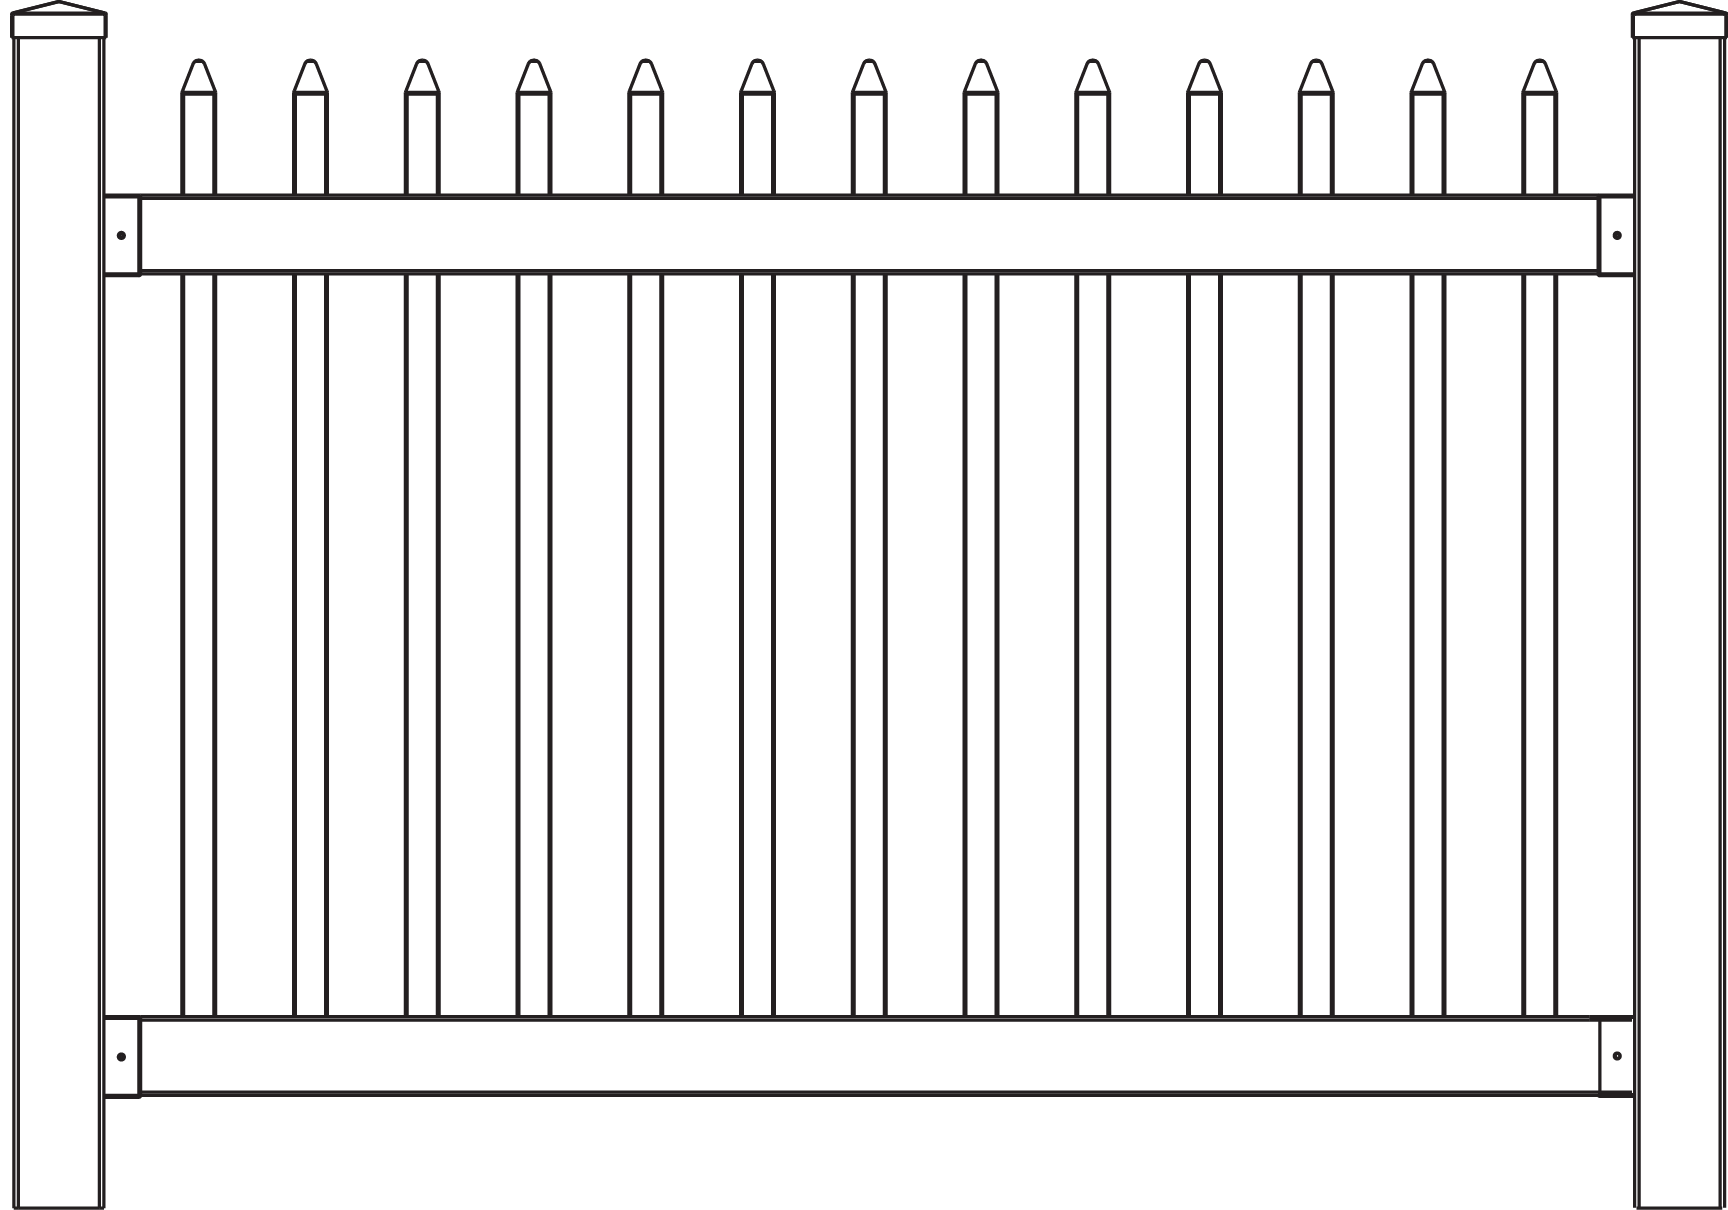 Fencing drawing simple. New line of no